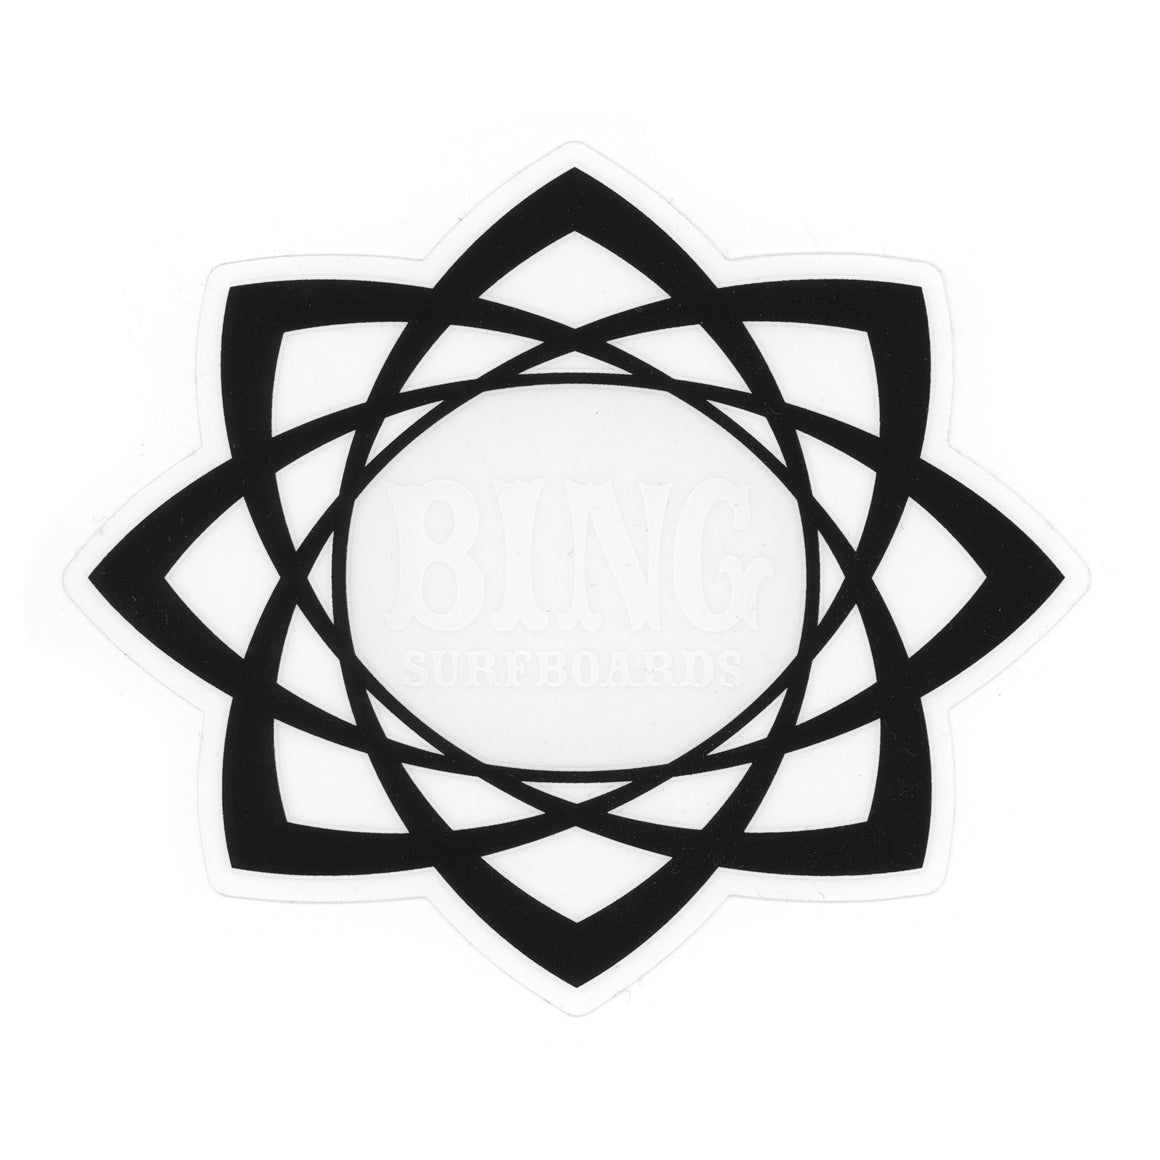 Mandala Sticker - Black